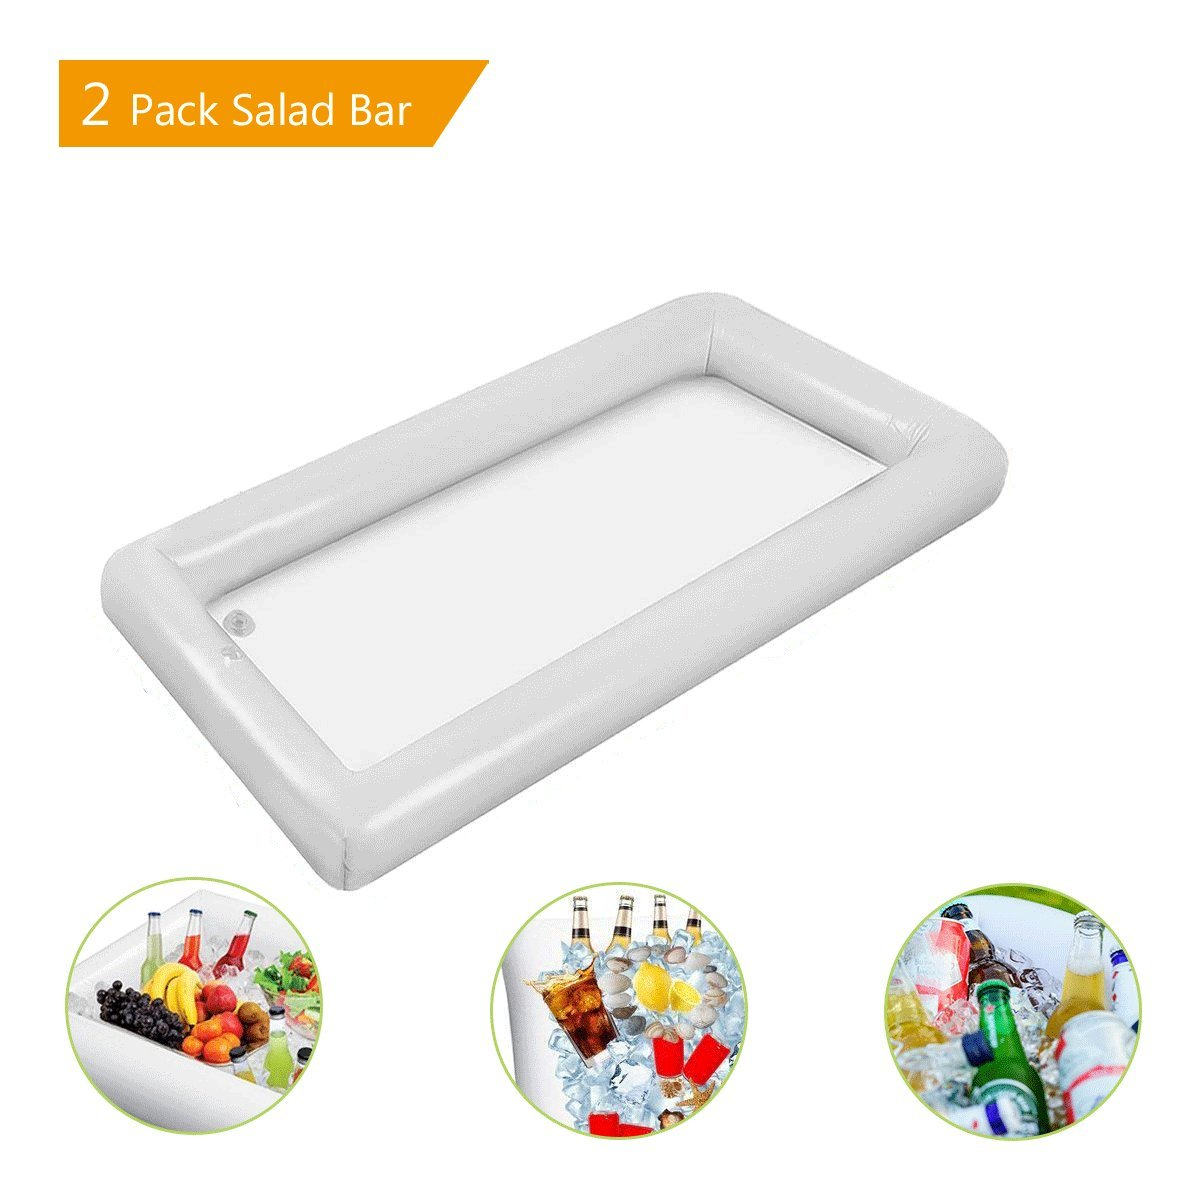 2 Piece Inflatable Salad Bar Tray Food Drink Holder for BBQ Picnic Pool Party Supplies Buffet with a Drain Plug